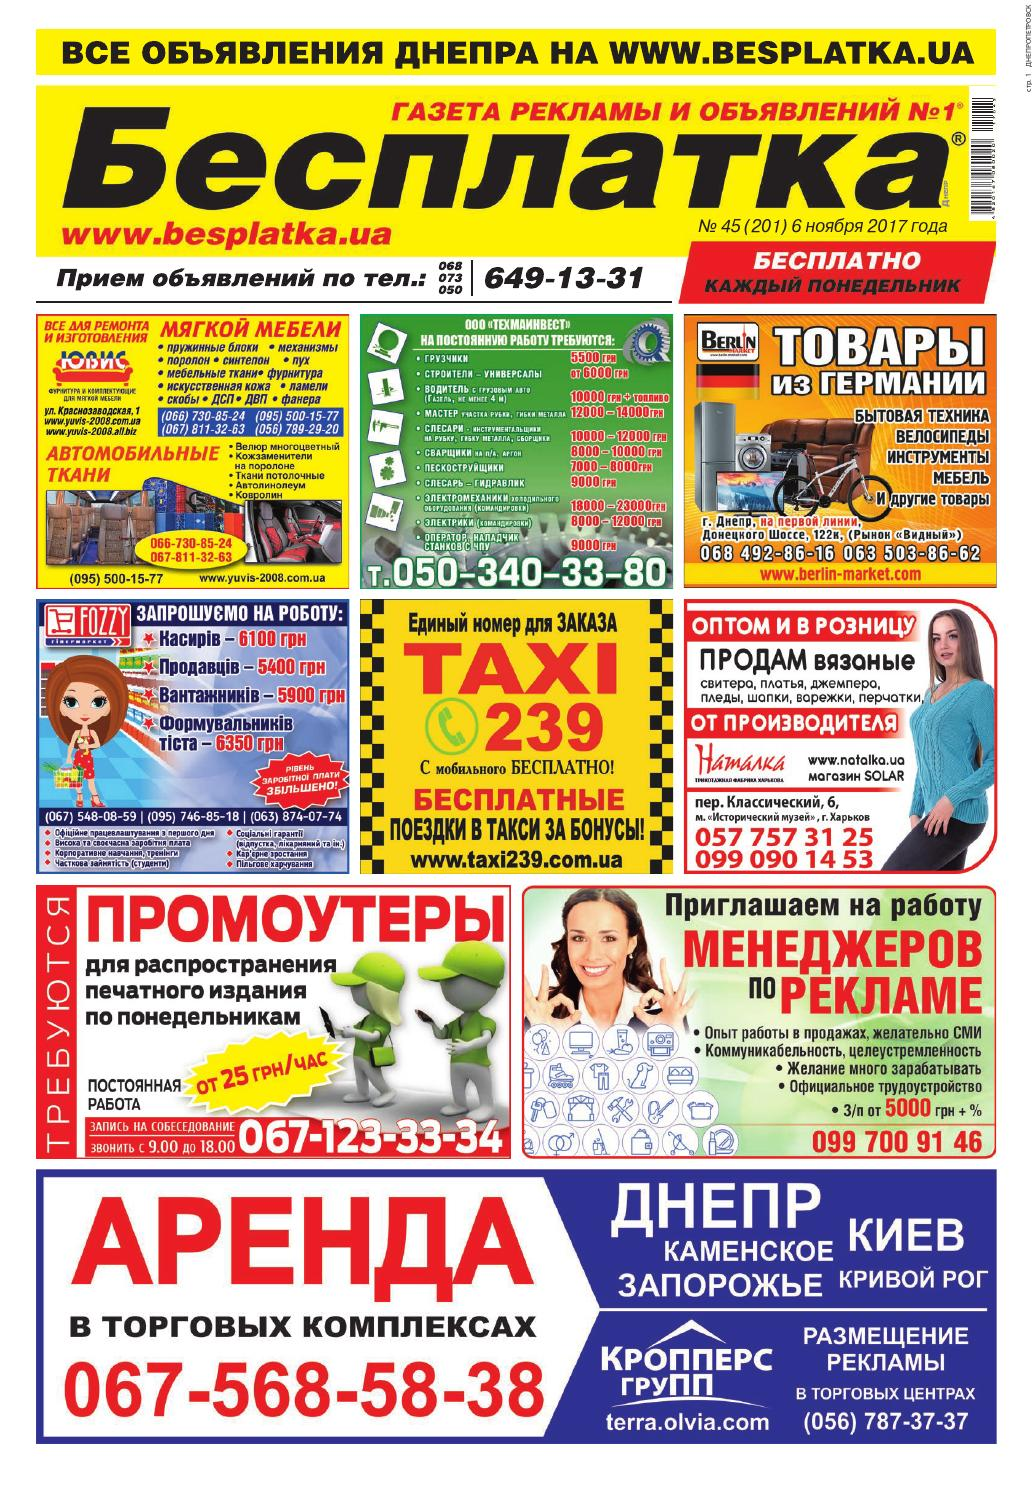 Besplatka  45 Днепр by besplatka ukraine - issuu 8e86f130582